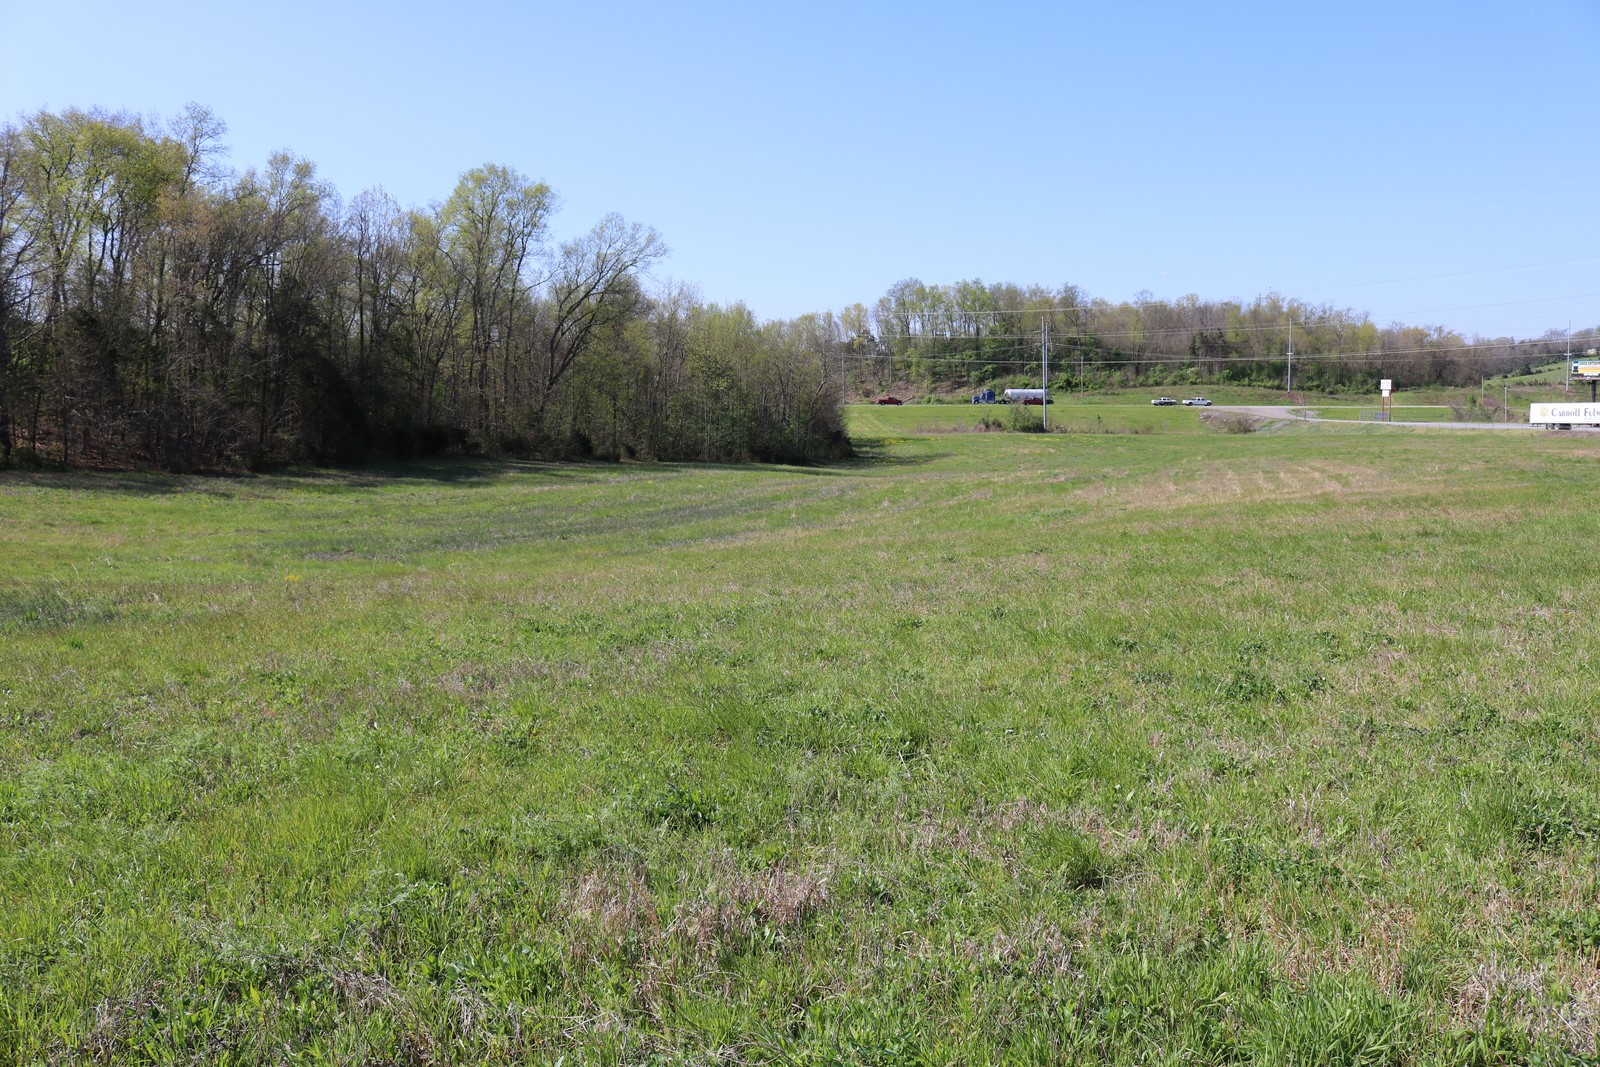 COMMERCIAL PROPERTY W ANDREW JOHNSON HIGHWAY 8.39 ACRES ZONED B4